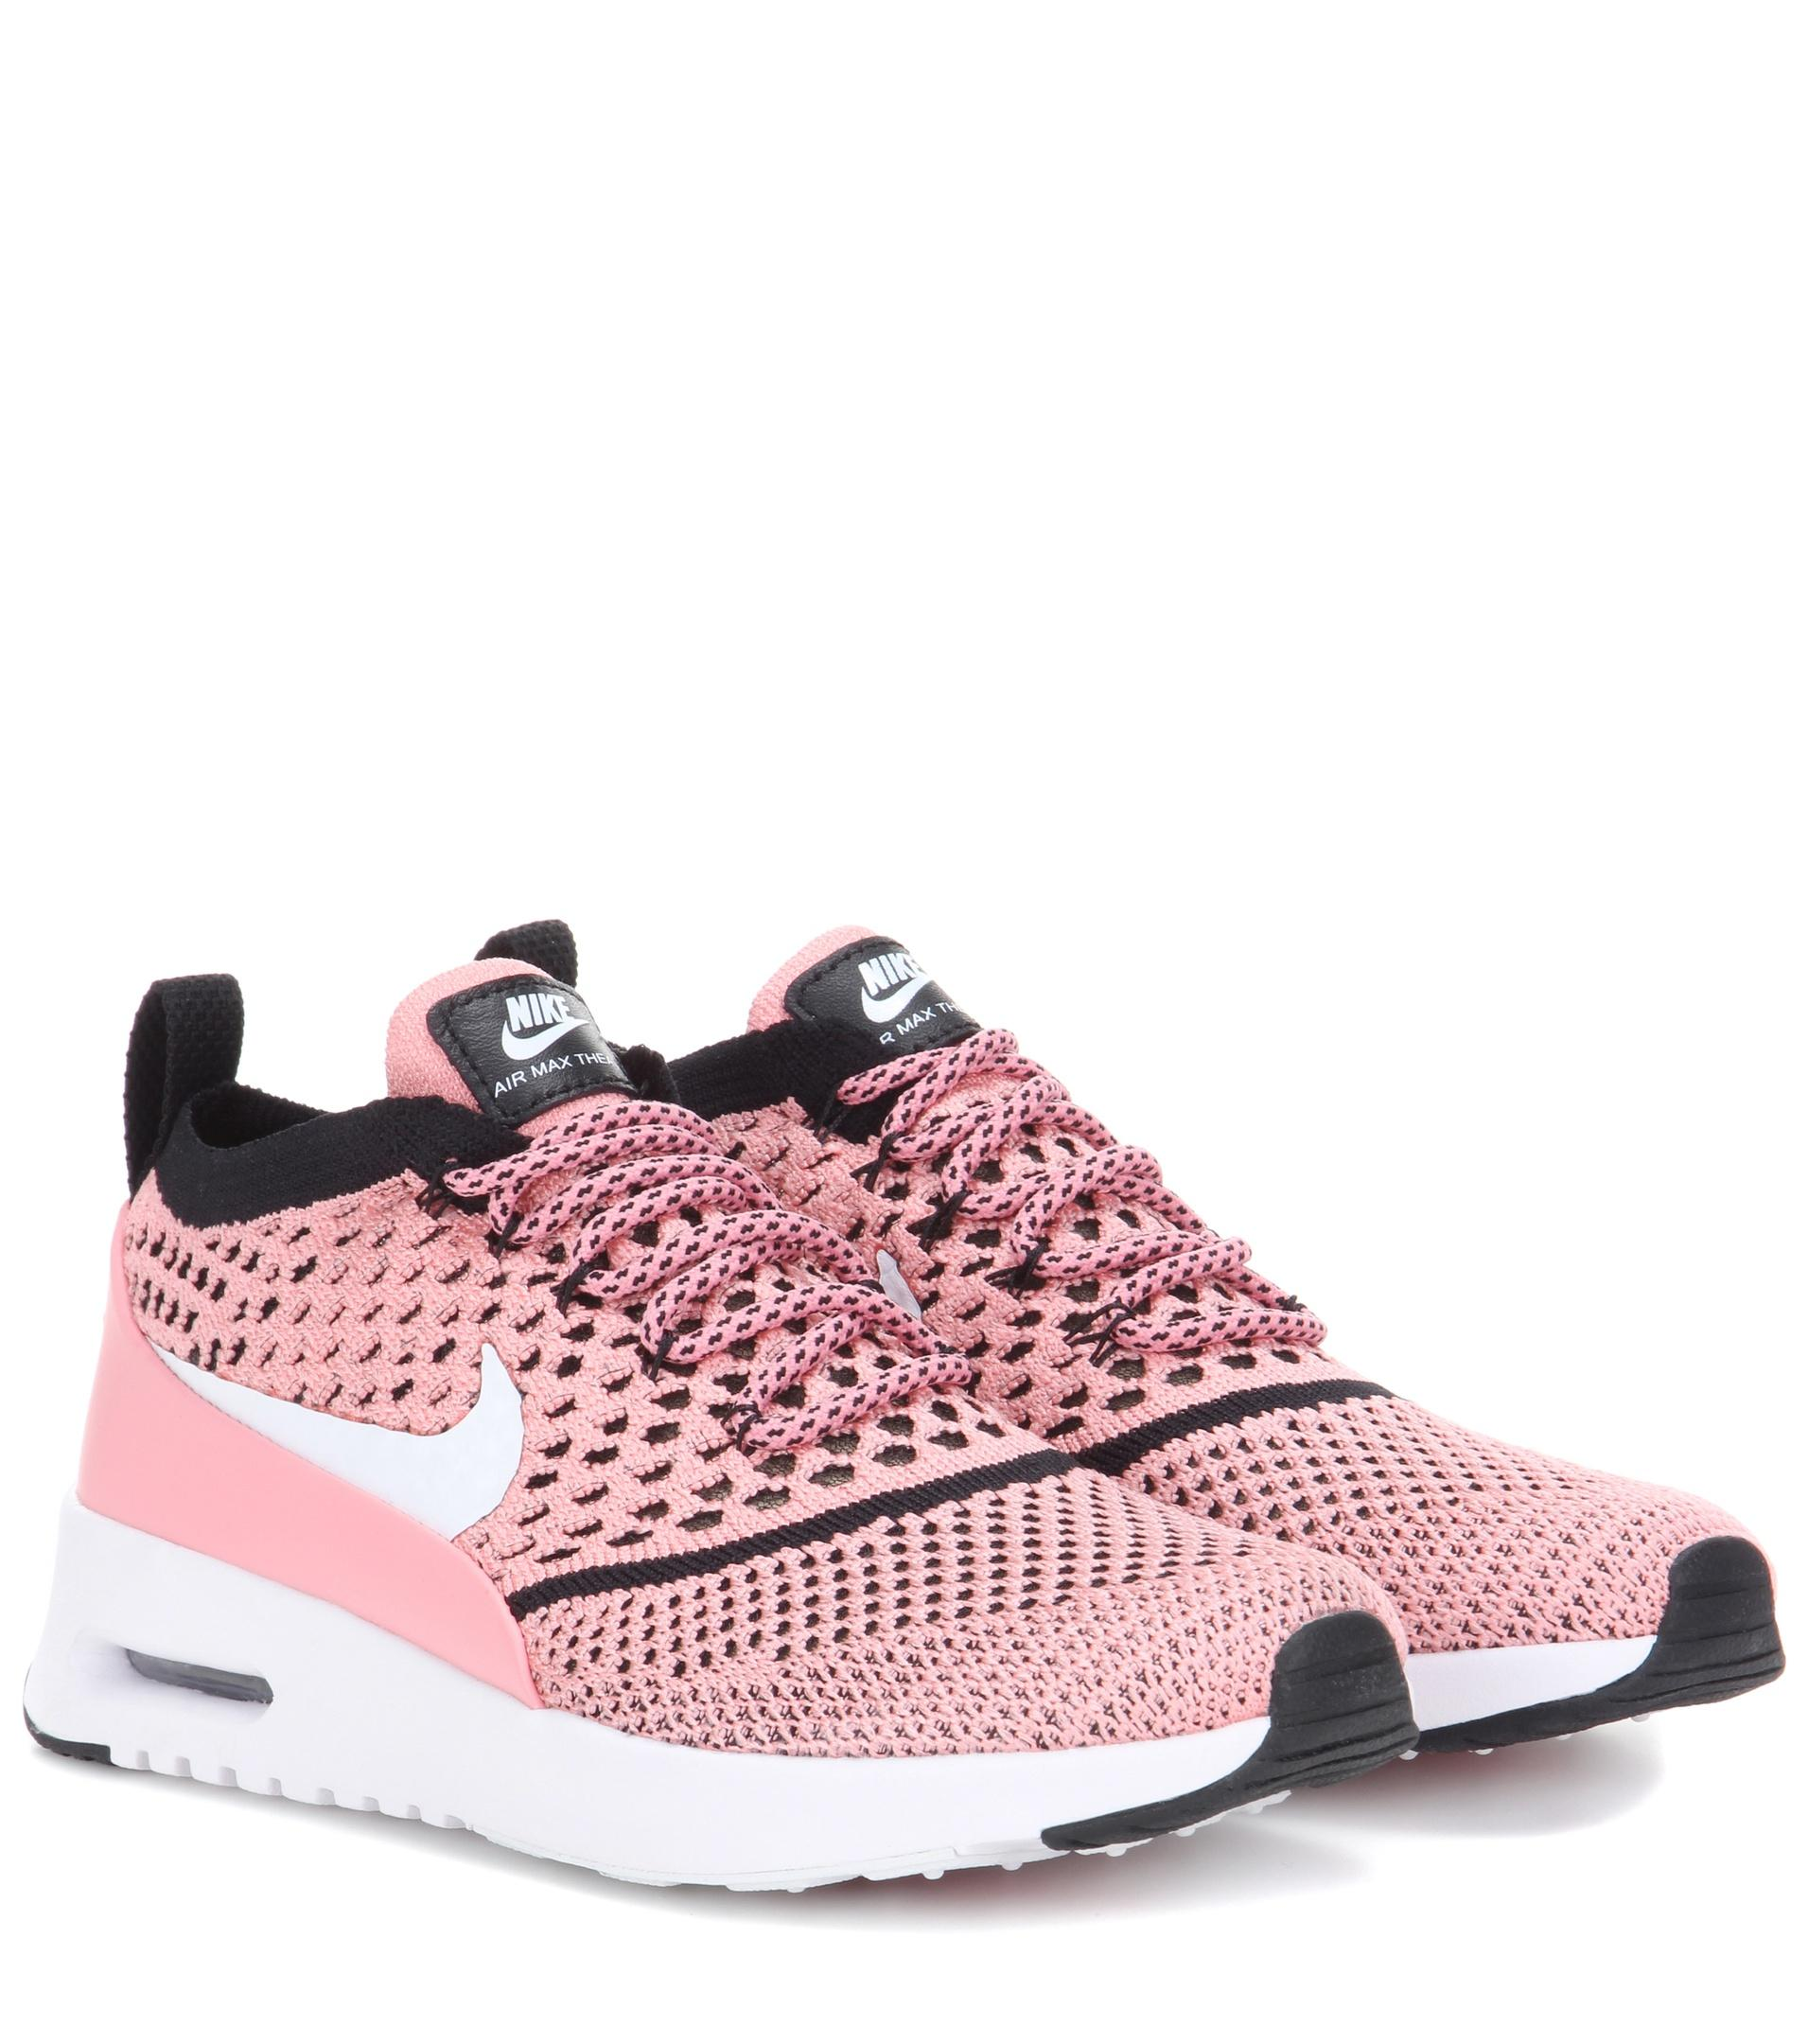 636fe85ad1ad Lyst - Nike Air Max Thea Ultra Flyknit Sneakers in Pink